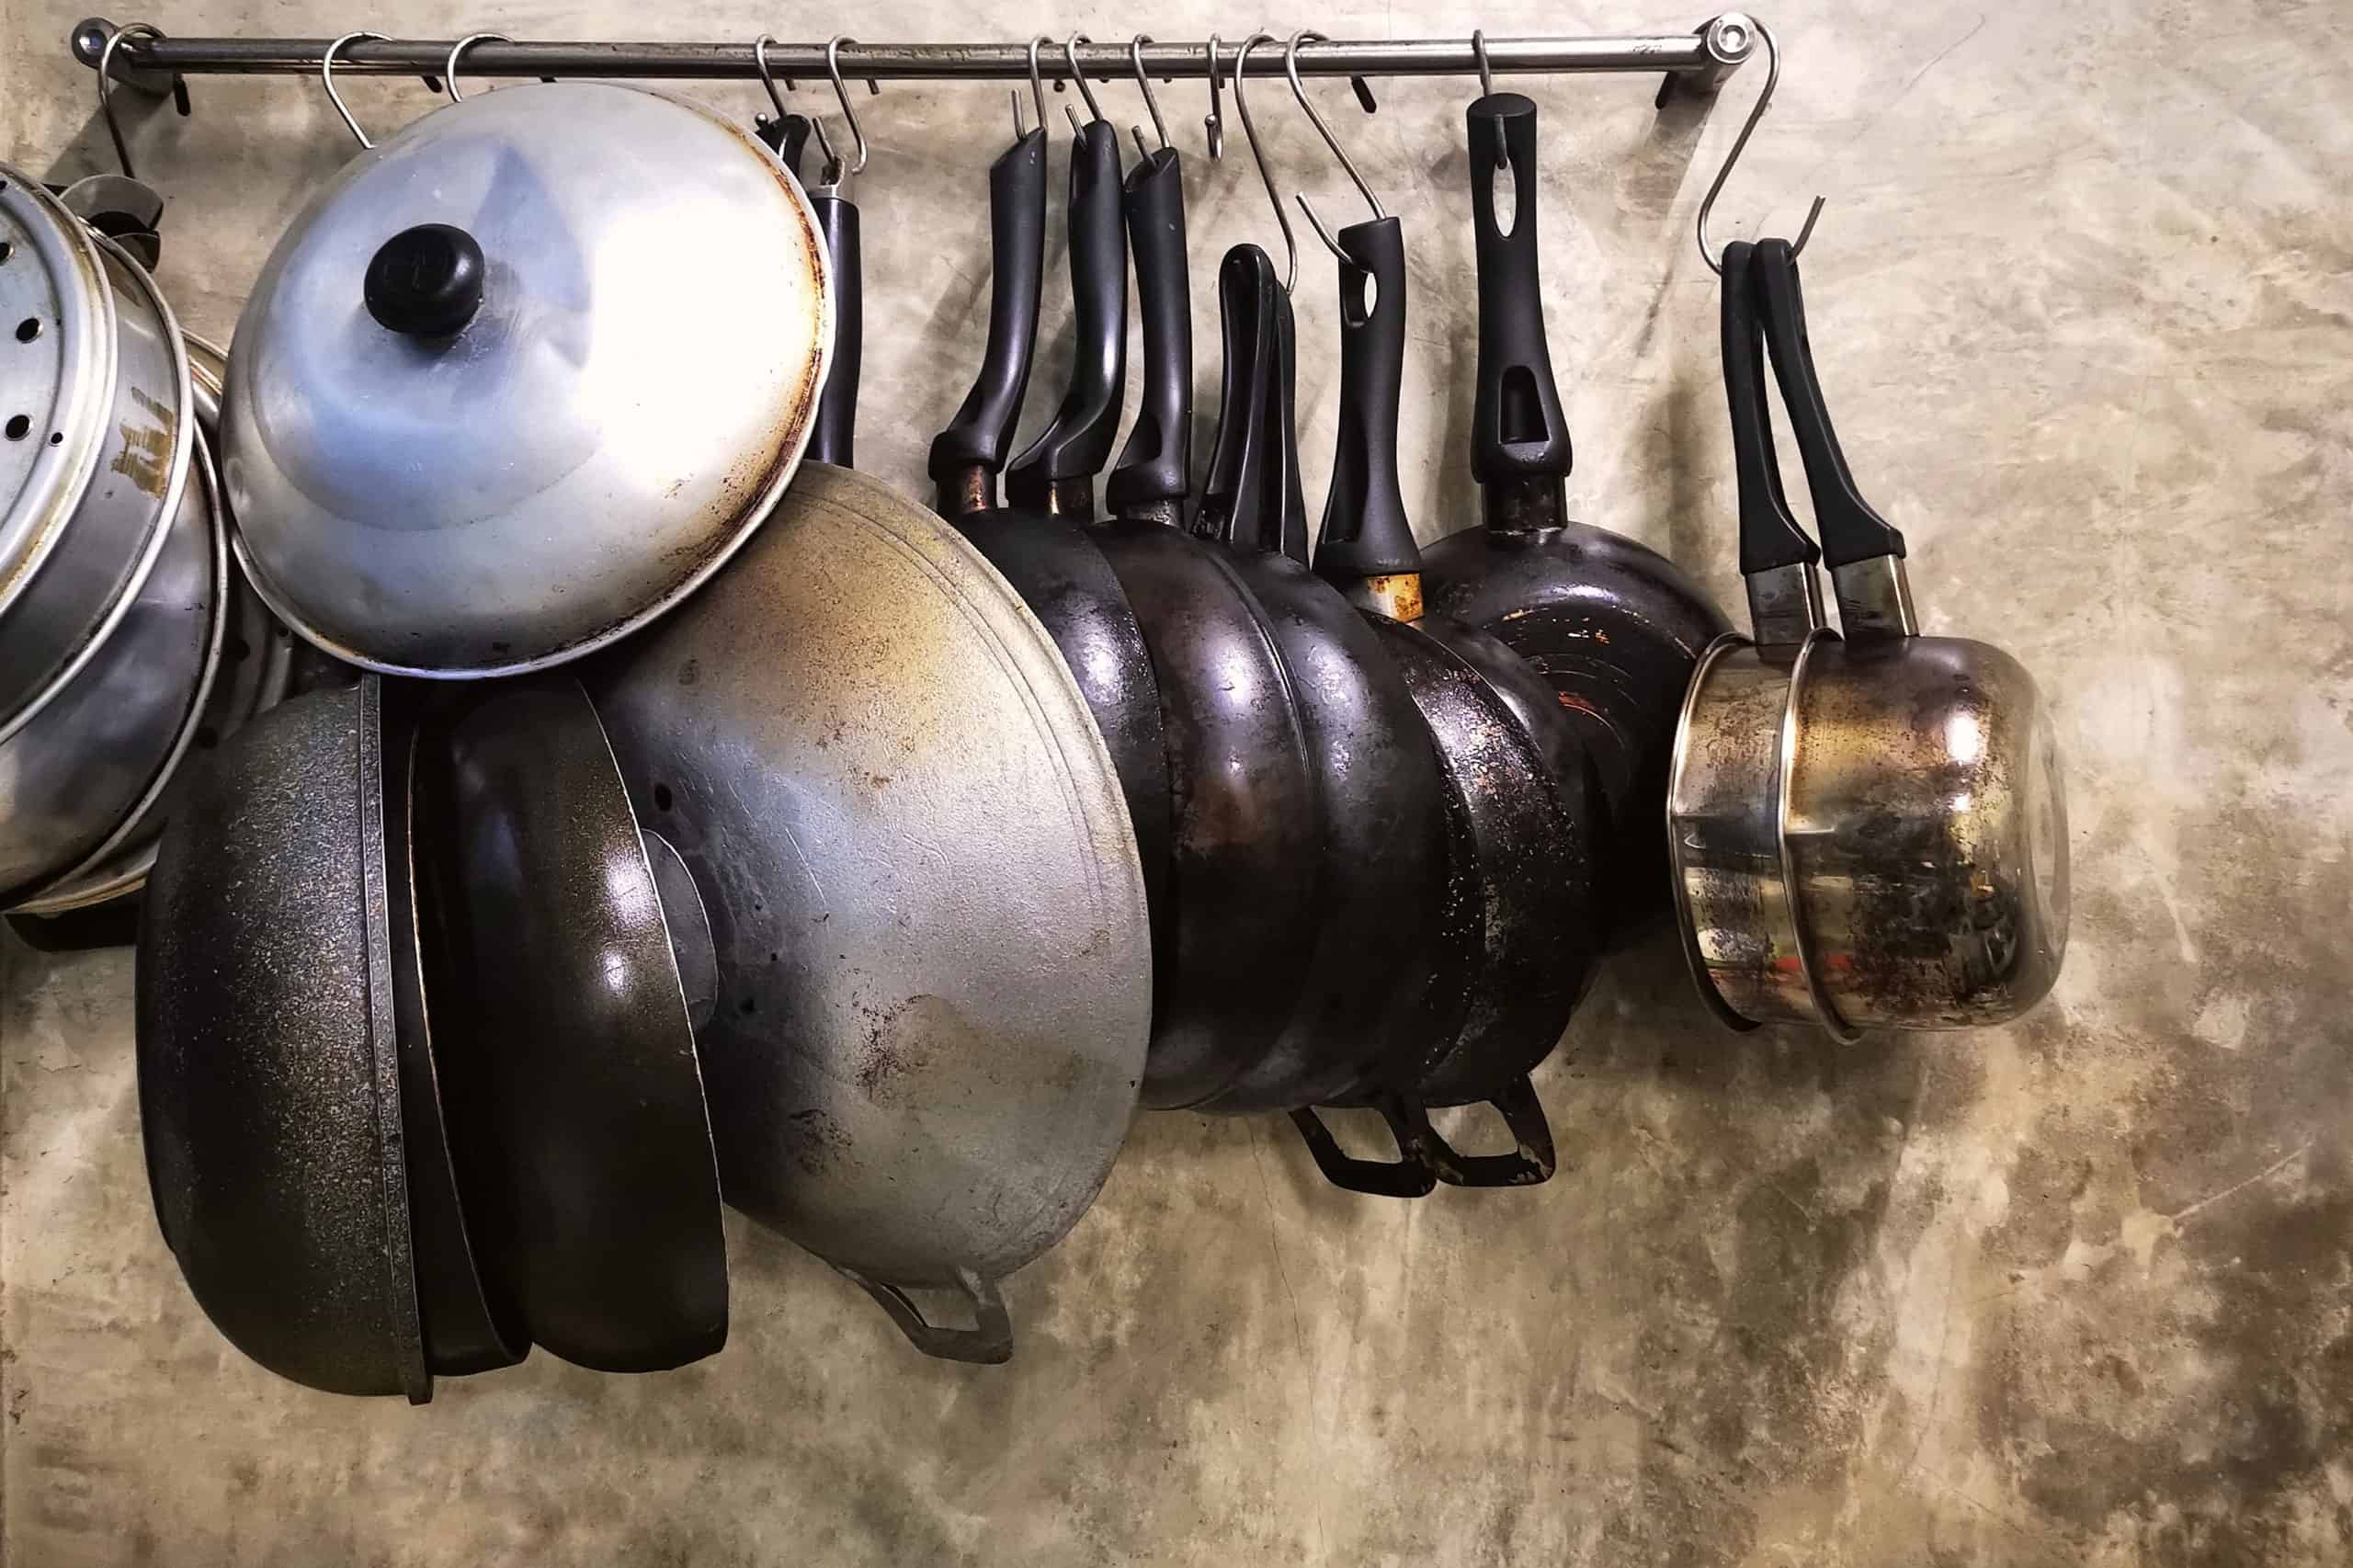 Stainless Steel v Carbon Steel Pans